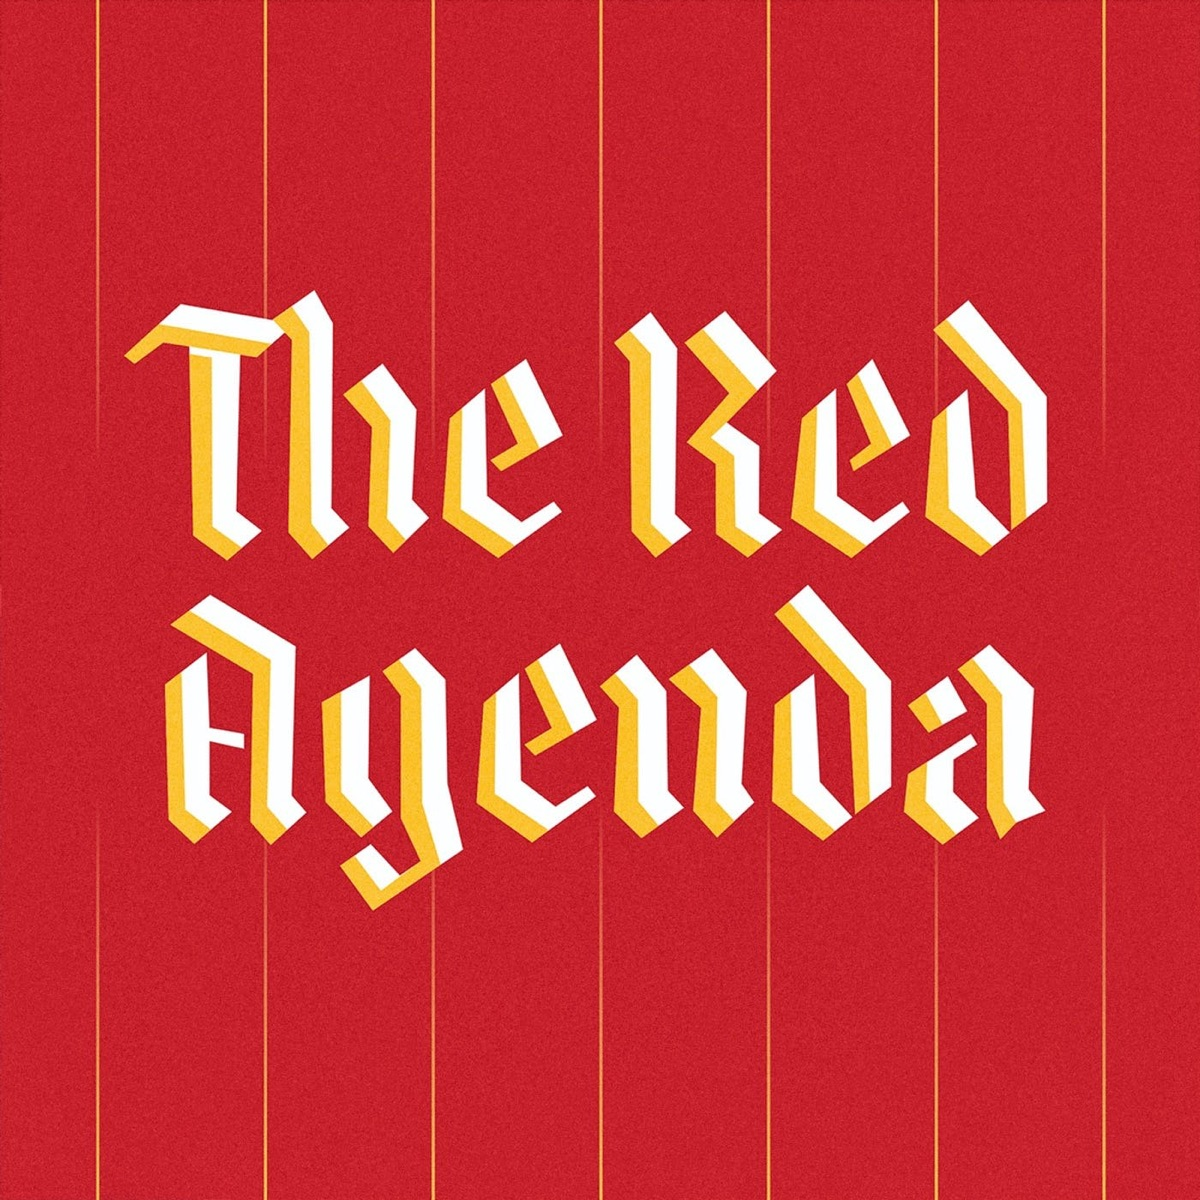 The Red Agenda - A show about Liverpool FC